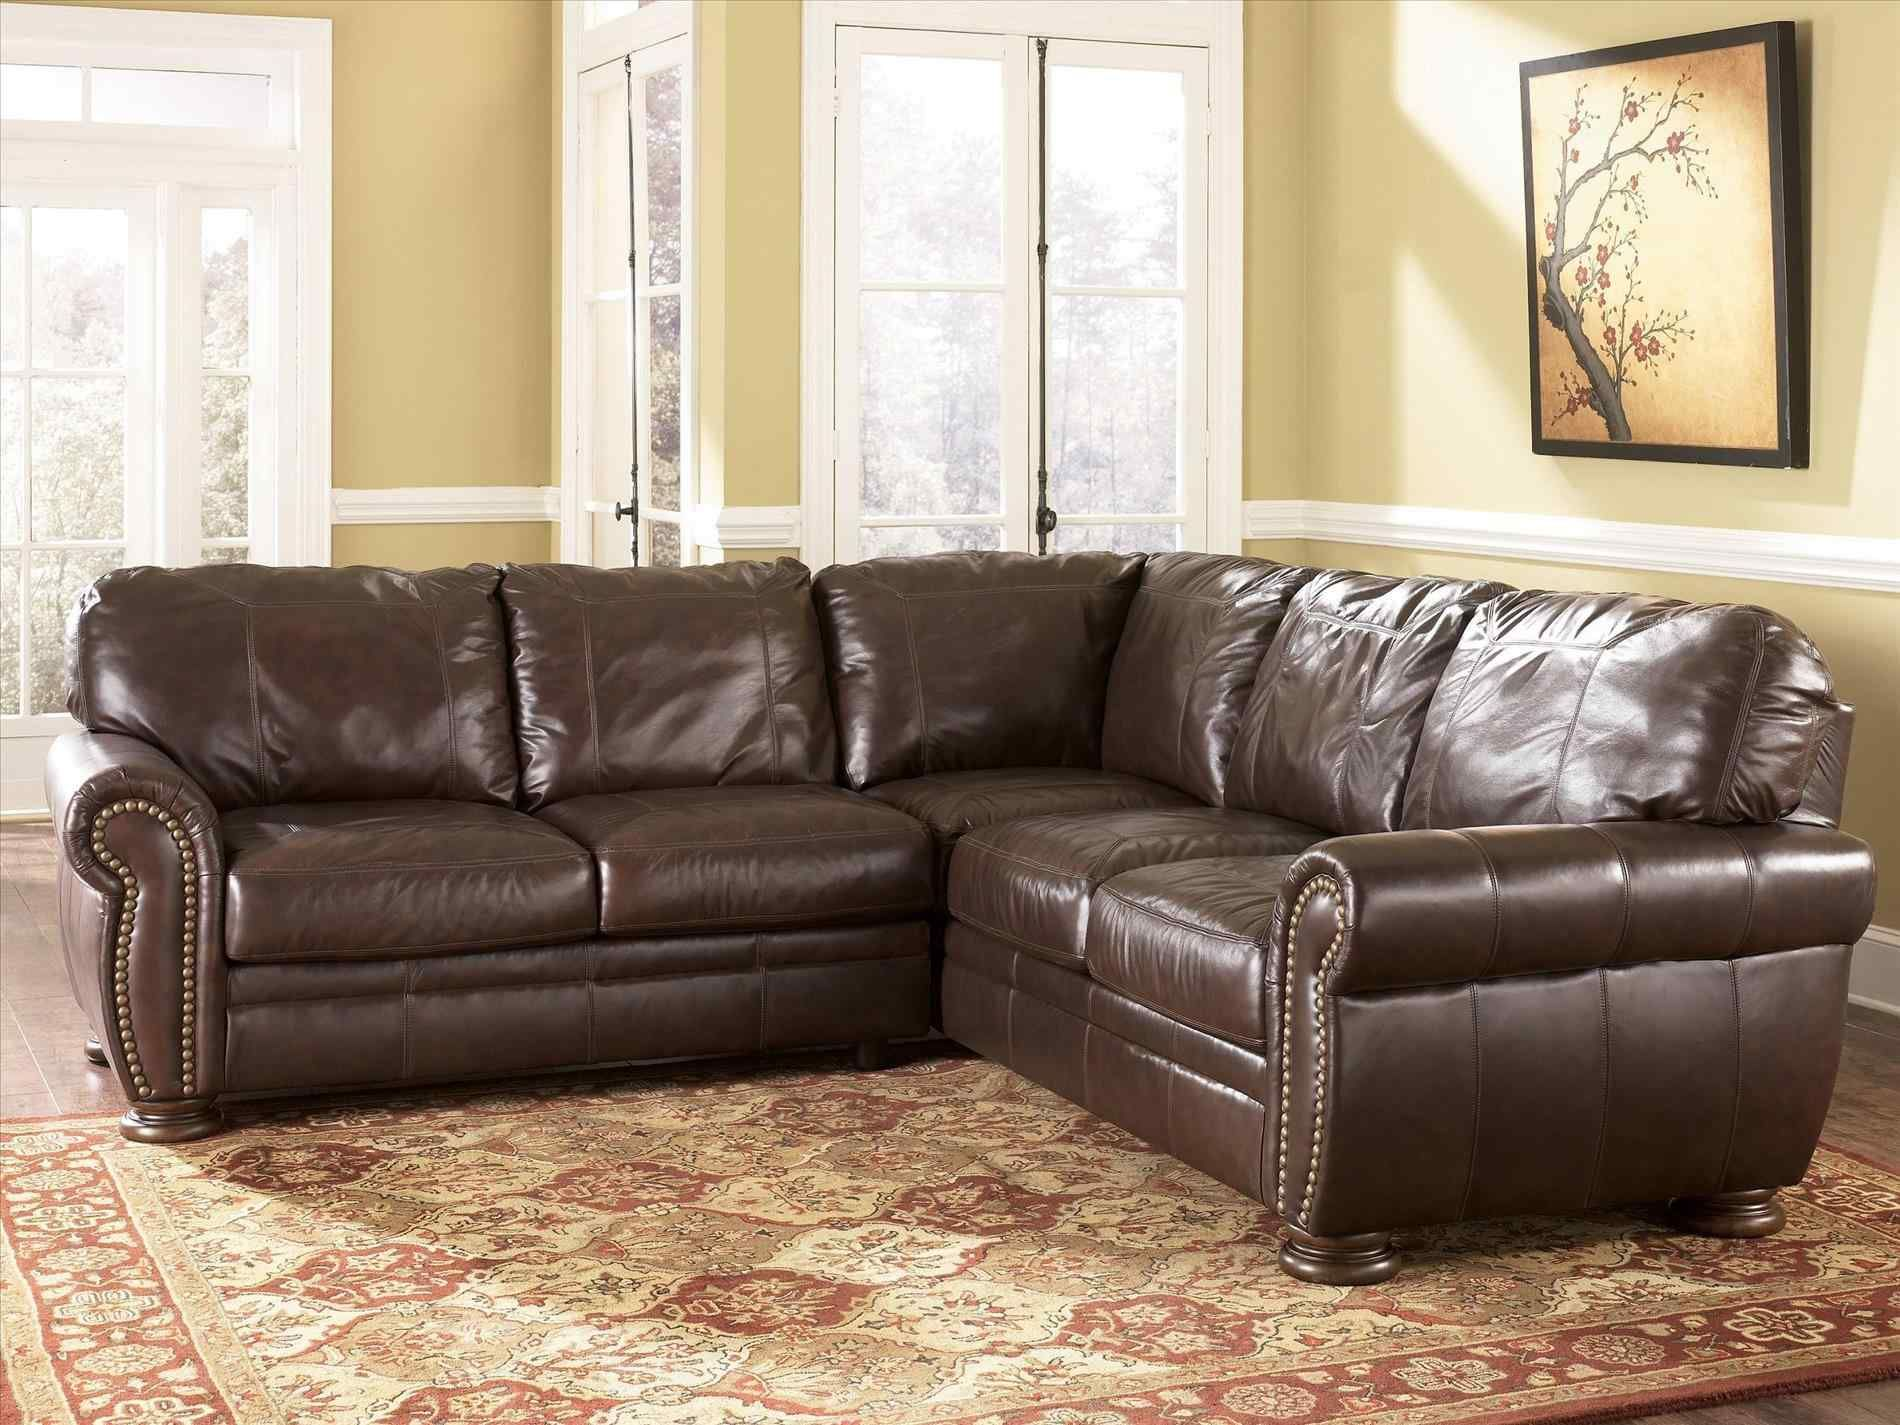 On Sale For Your Astounding About Remodel Plush Astounding Sectional Sofas Cheap Prices About Remodel Affordable Couch Ashley Furniture Sectional Couch Design